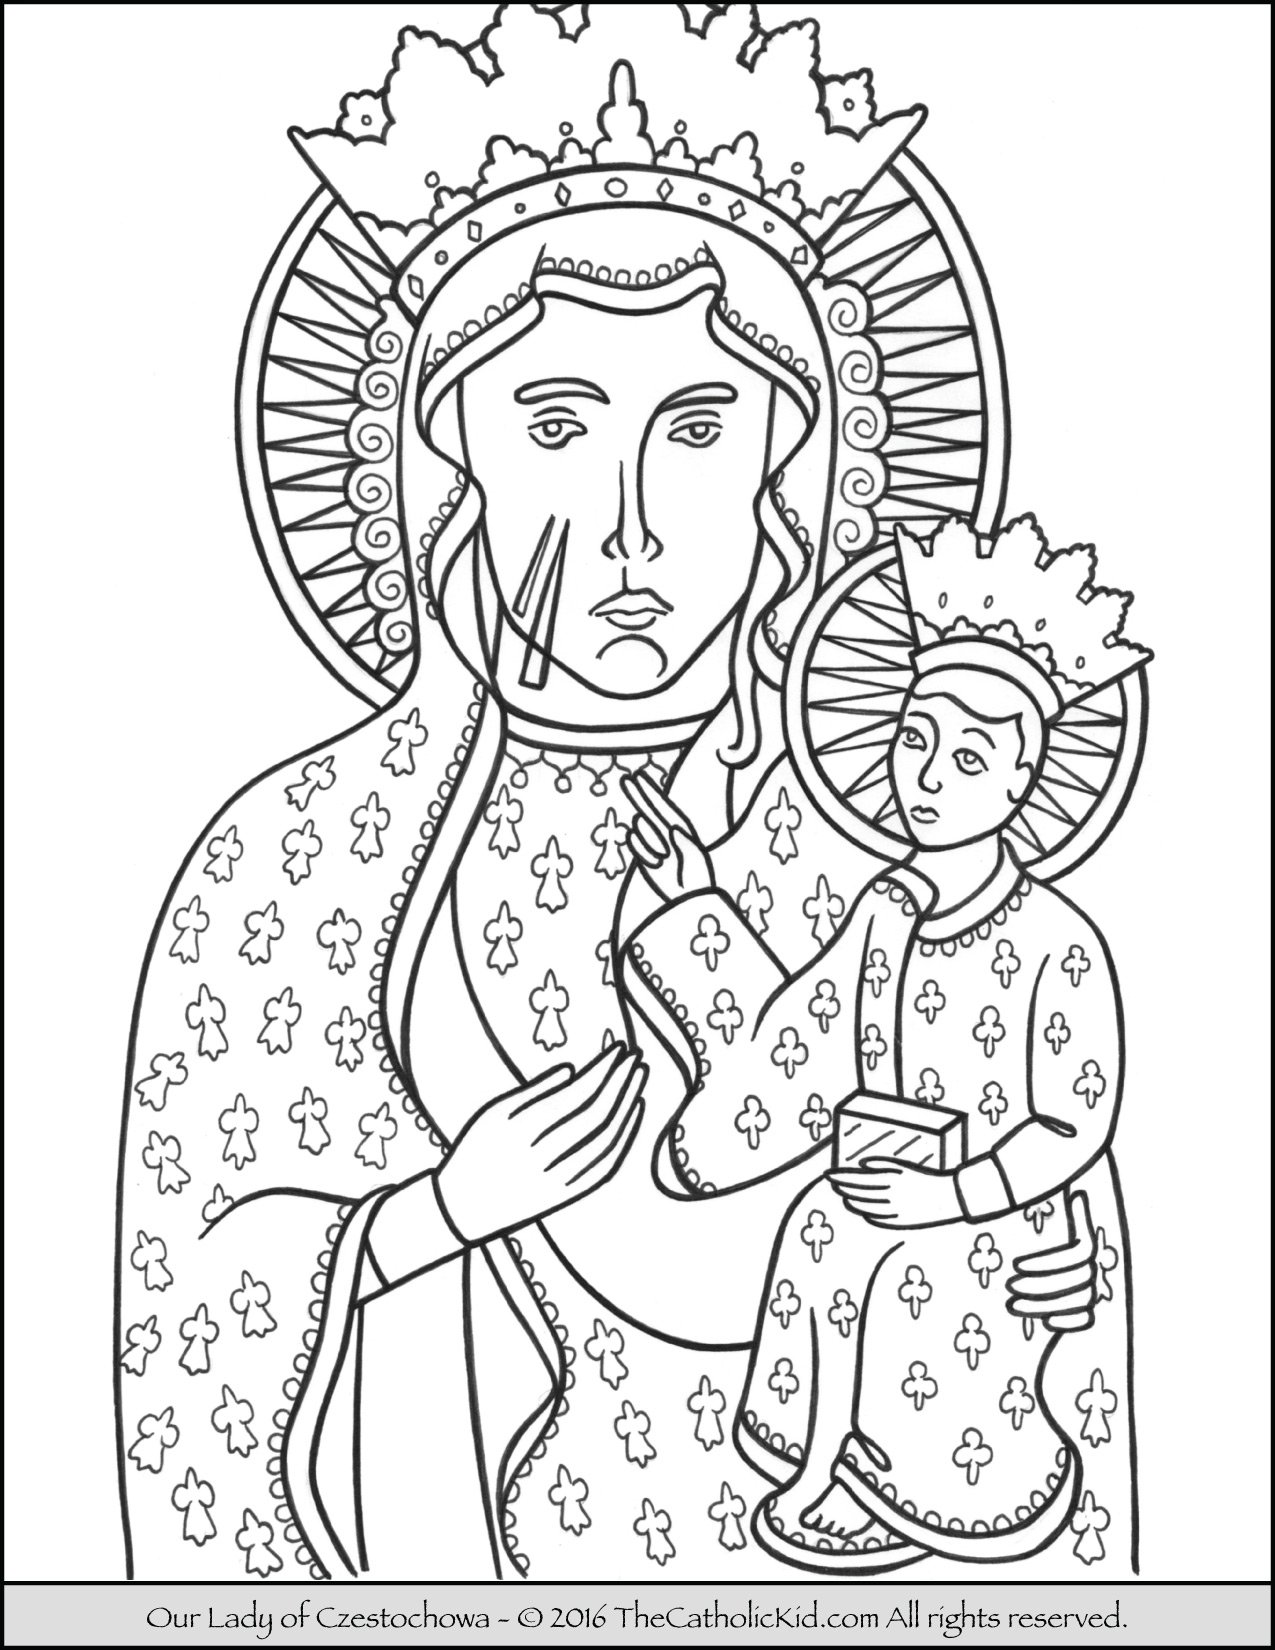 Our Lady of Czestochowa Coloring Page